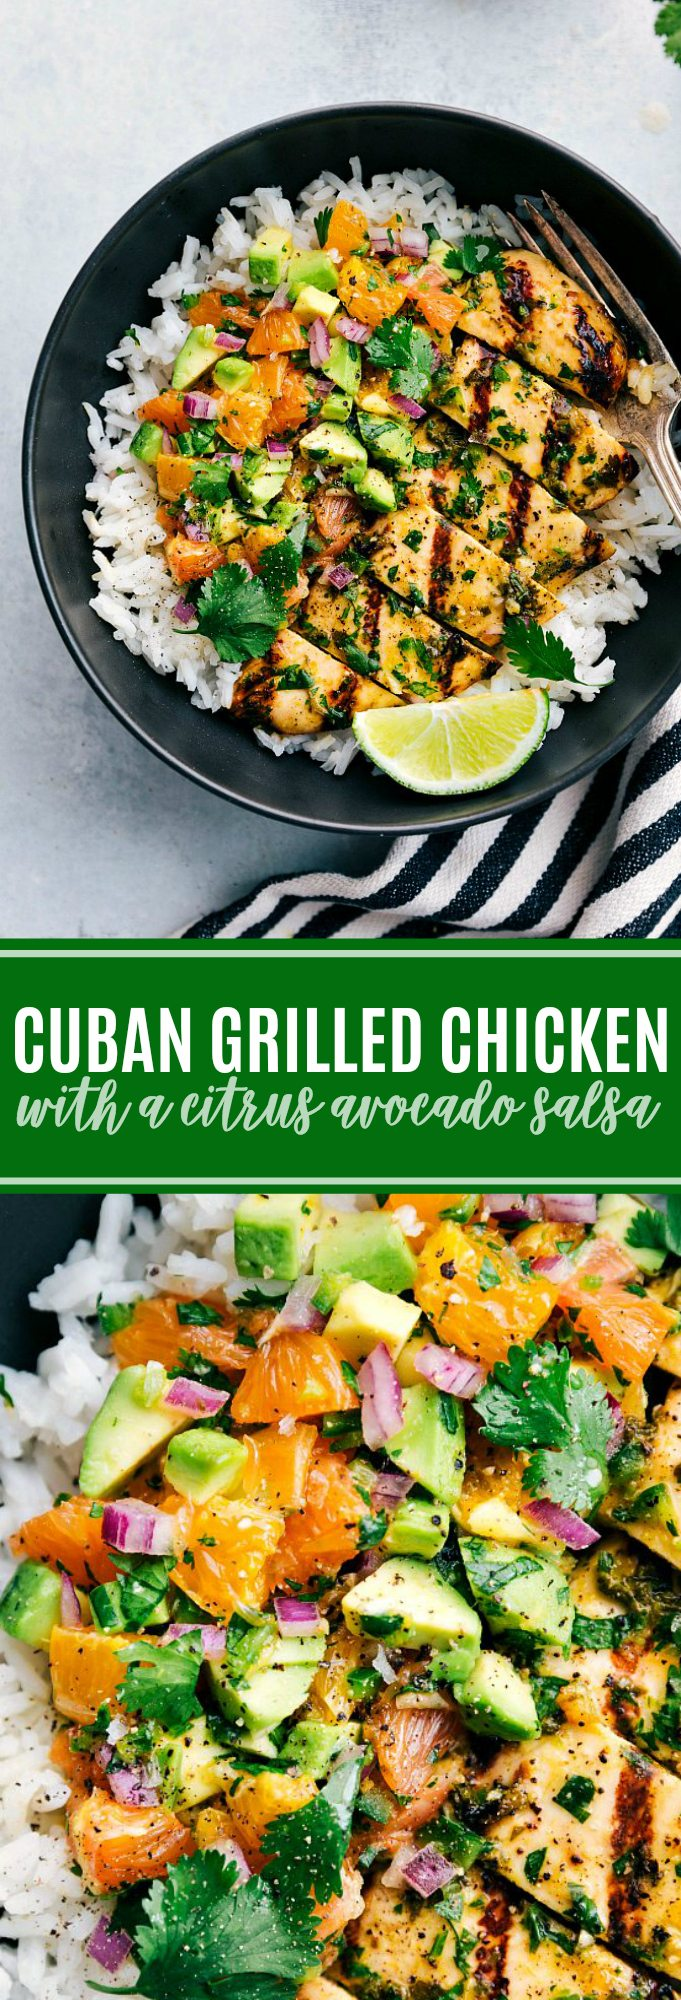 The ultimate BEST EVER grilled mojo chicken with a delicious avocado citrus salsa via chelseasmessyapron.com #avocado #citrus #salsa #easy #quick #dinner #rice #cilantro #lime #fresh #healthy #kidfriendly #cuban #mojo #chicken #dinner